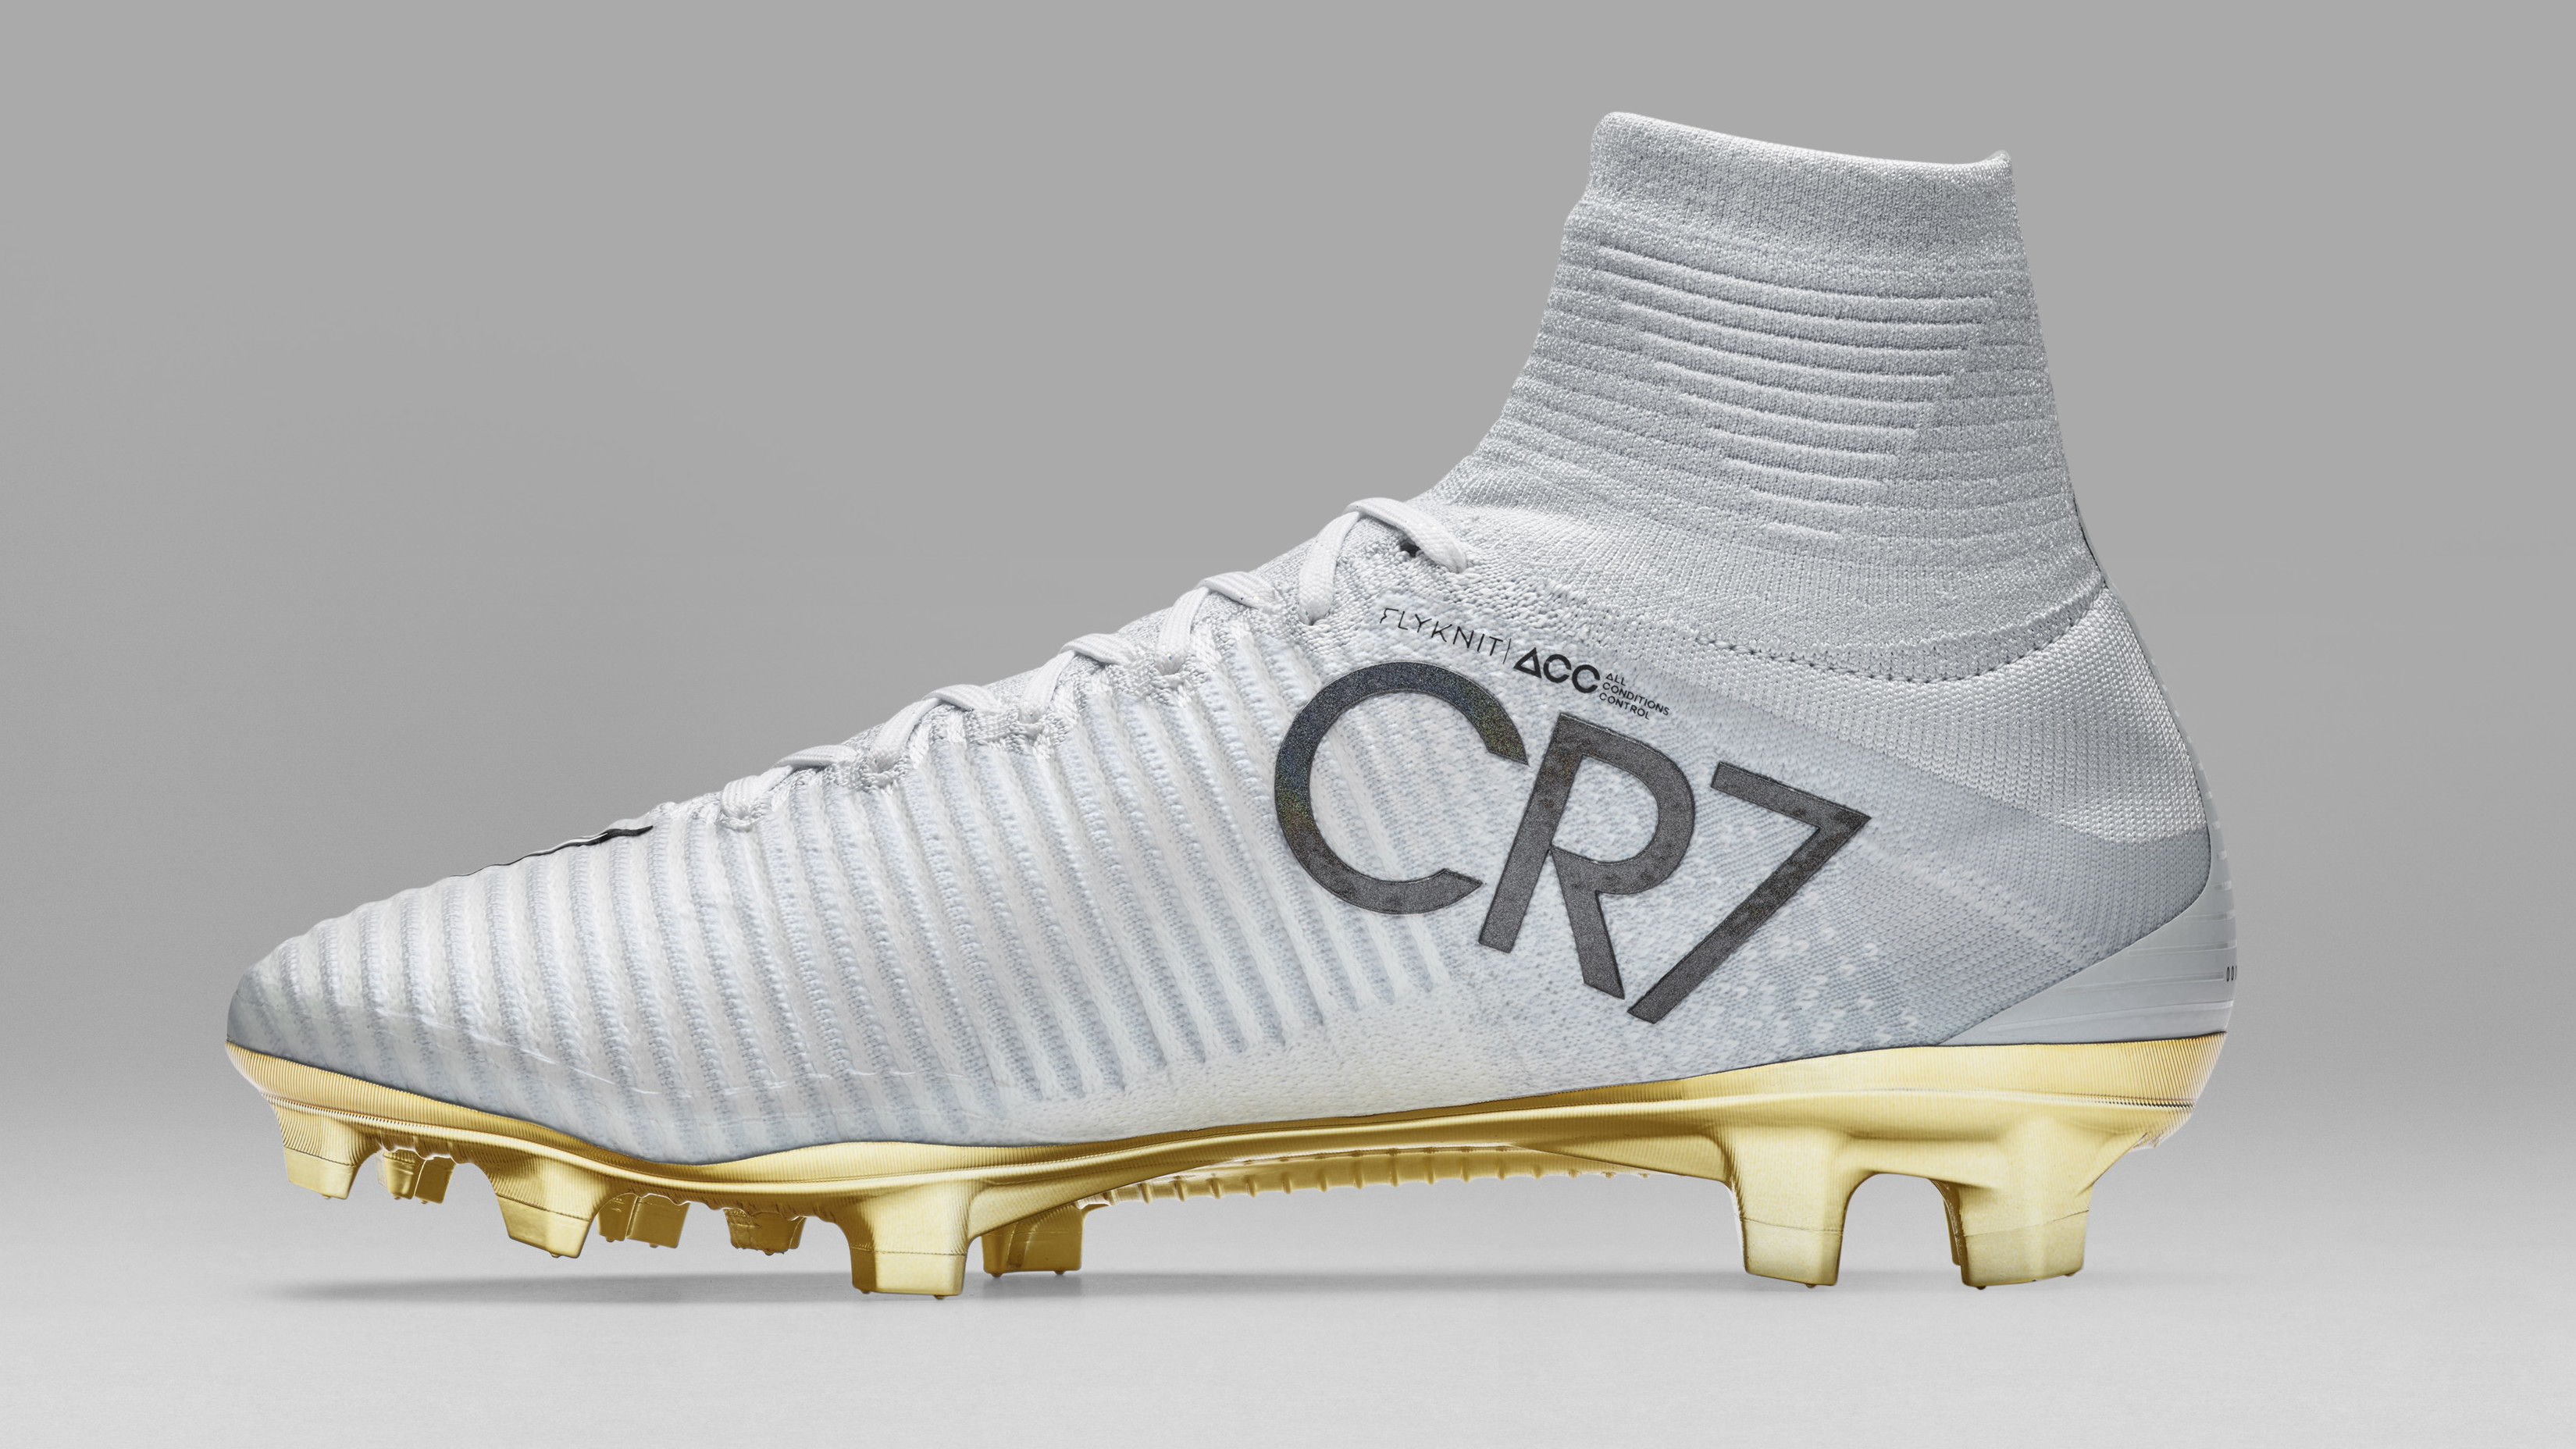 ce1a43f98 cheap cr7 cleats indoor gold white